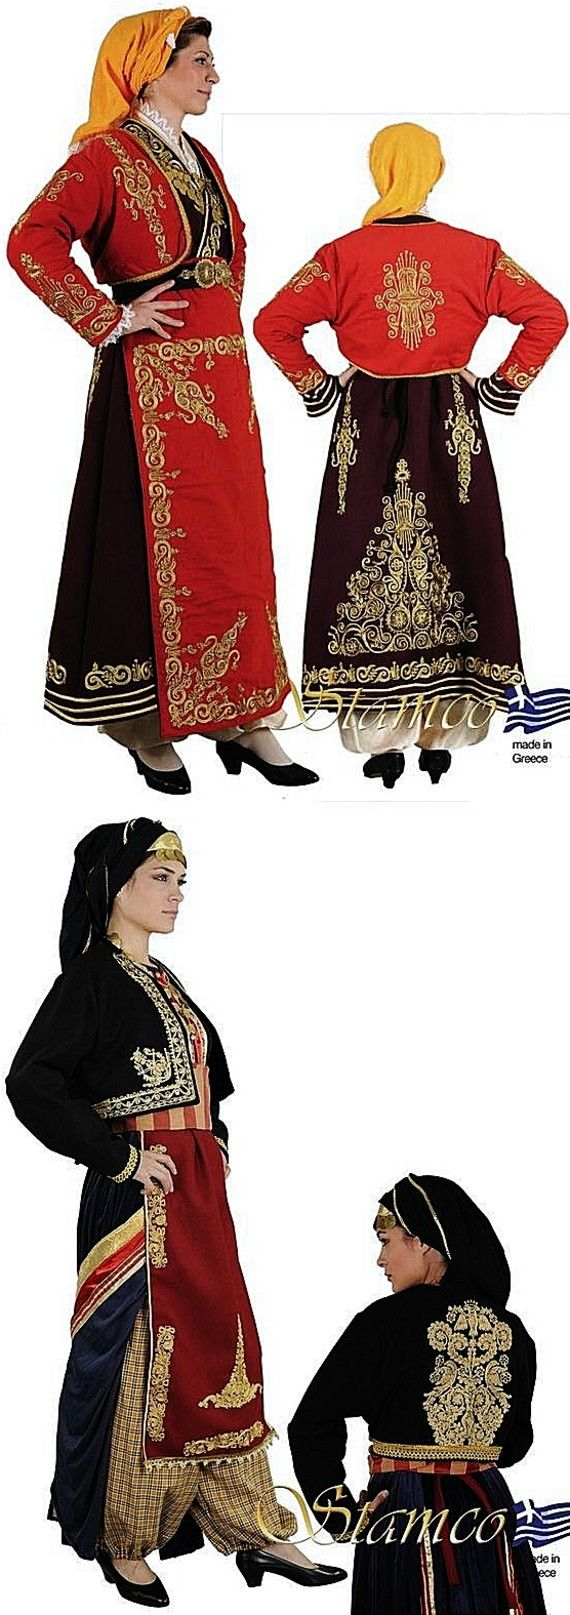 Traditional festive costumes from Cappadocia (Central Anatolia), with embroidered robe, vest and apron.    Clothing style: Rum (Anatolian Greek), early 20th century.  These are contemporary workshop-made copies, as worn by folk dance groups.  (Source: Stamco Costumes; www.greek-costumes.com).